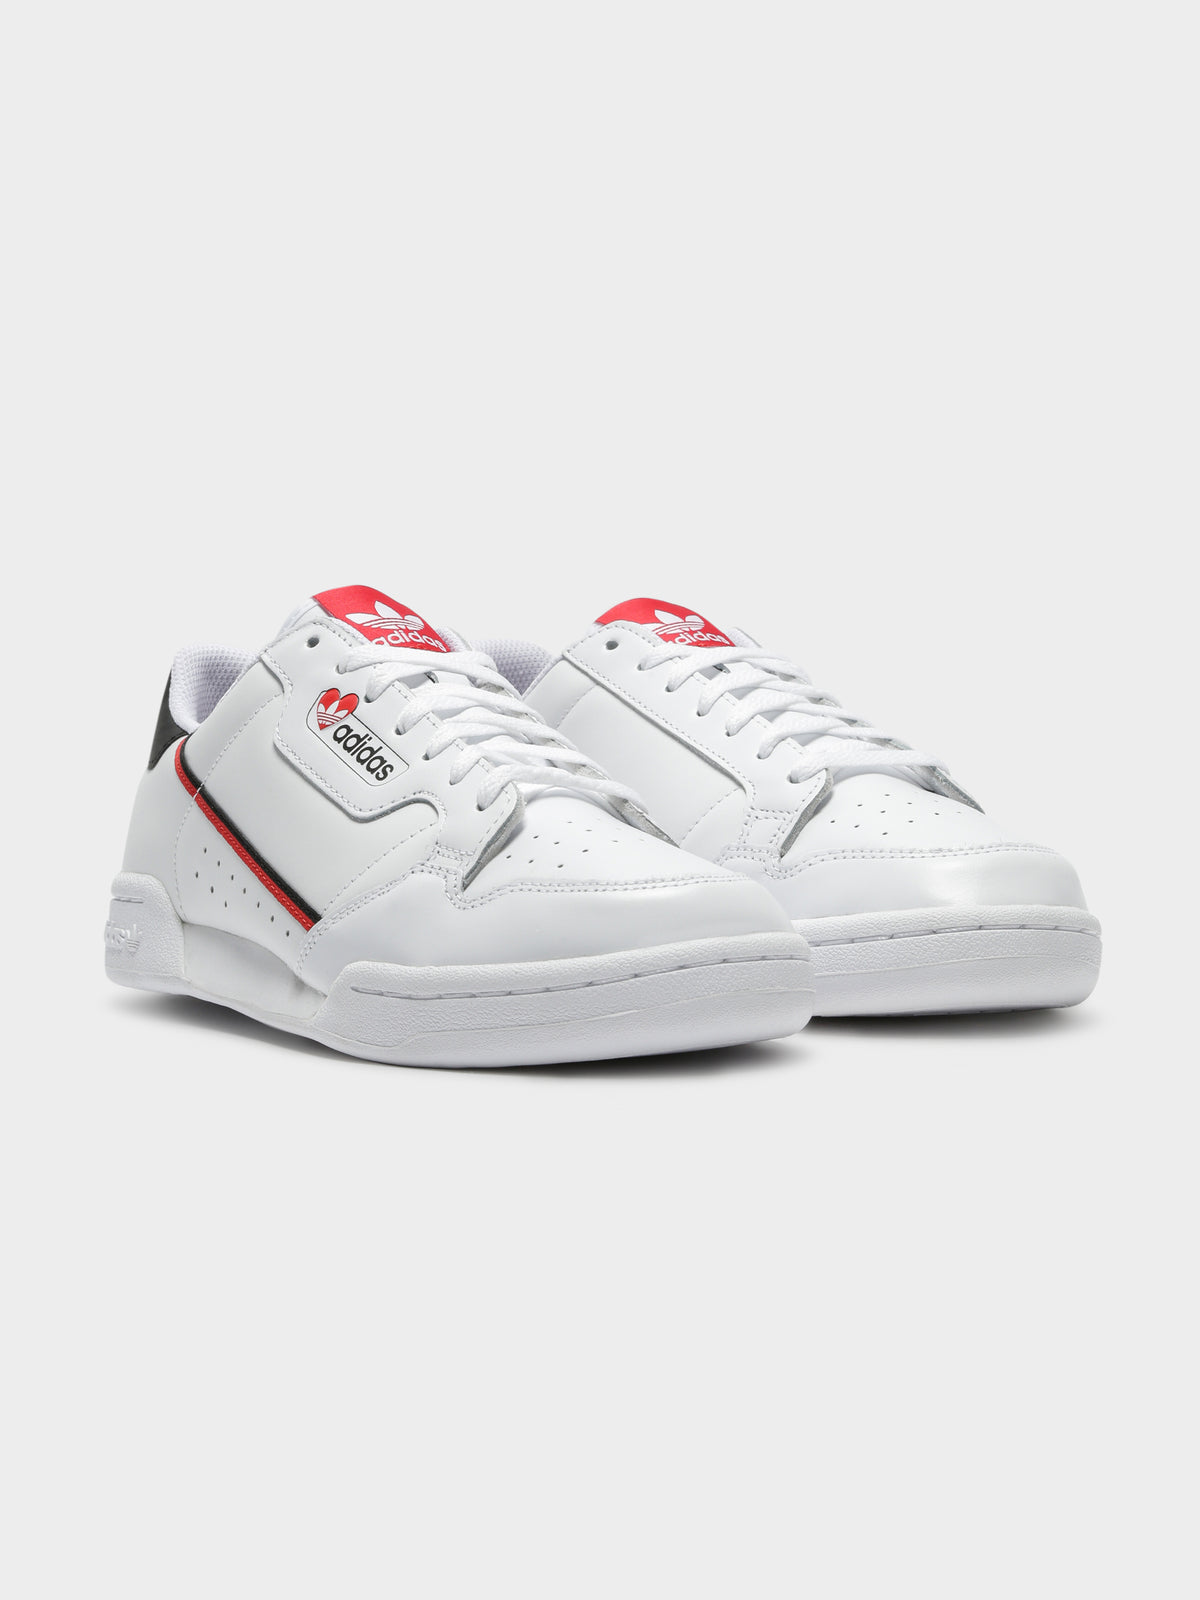 Womens Sleek Heart Sneakers in White & Scarlet